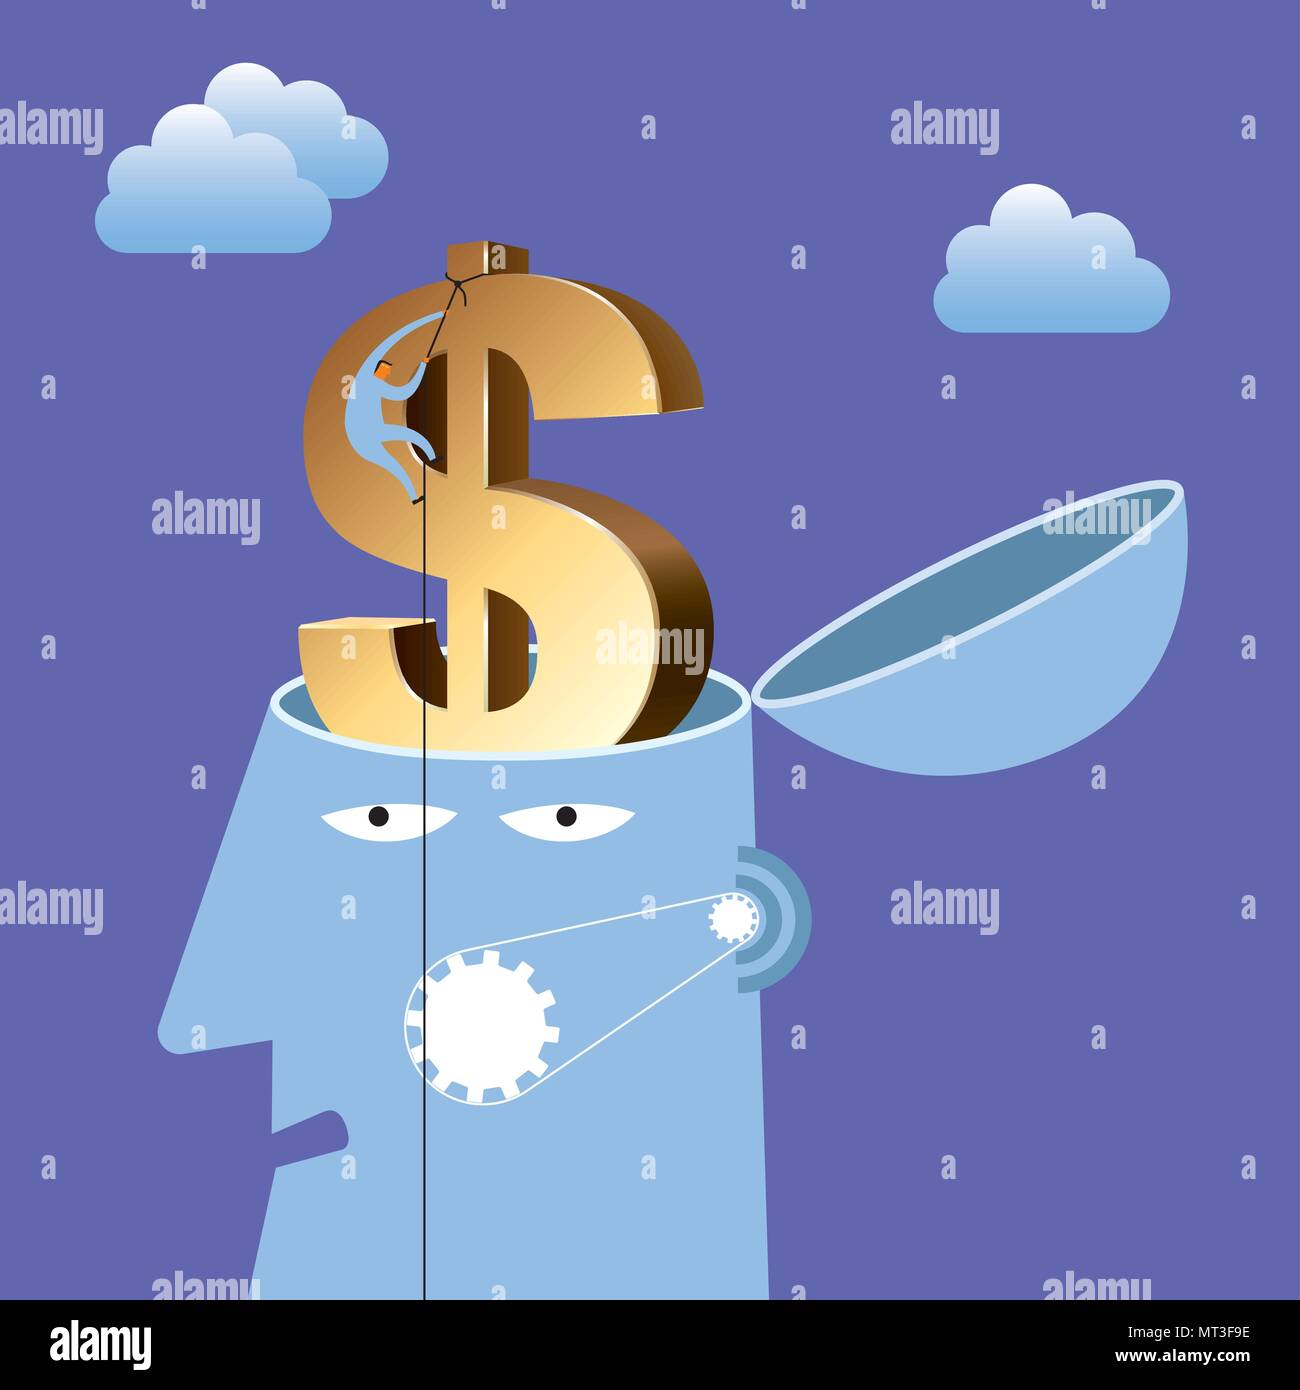 Artificial intelligence concept design, dollar sign in the brain. - Stock Vector